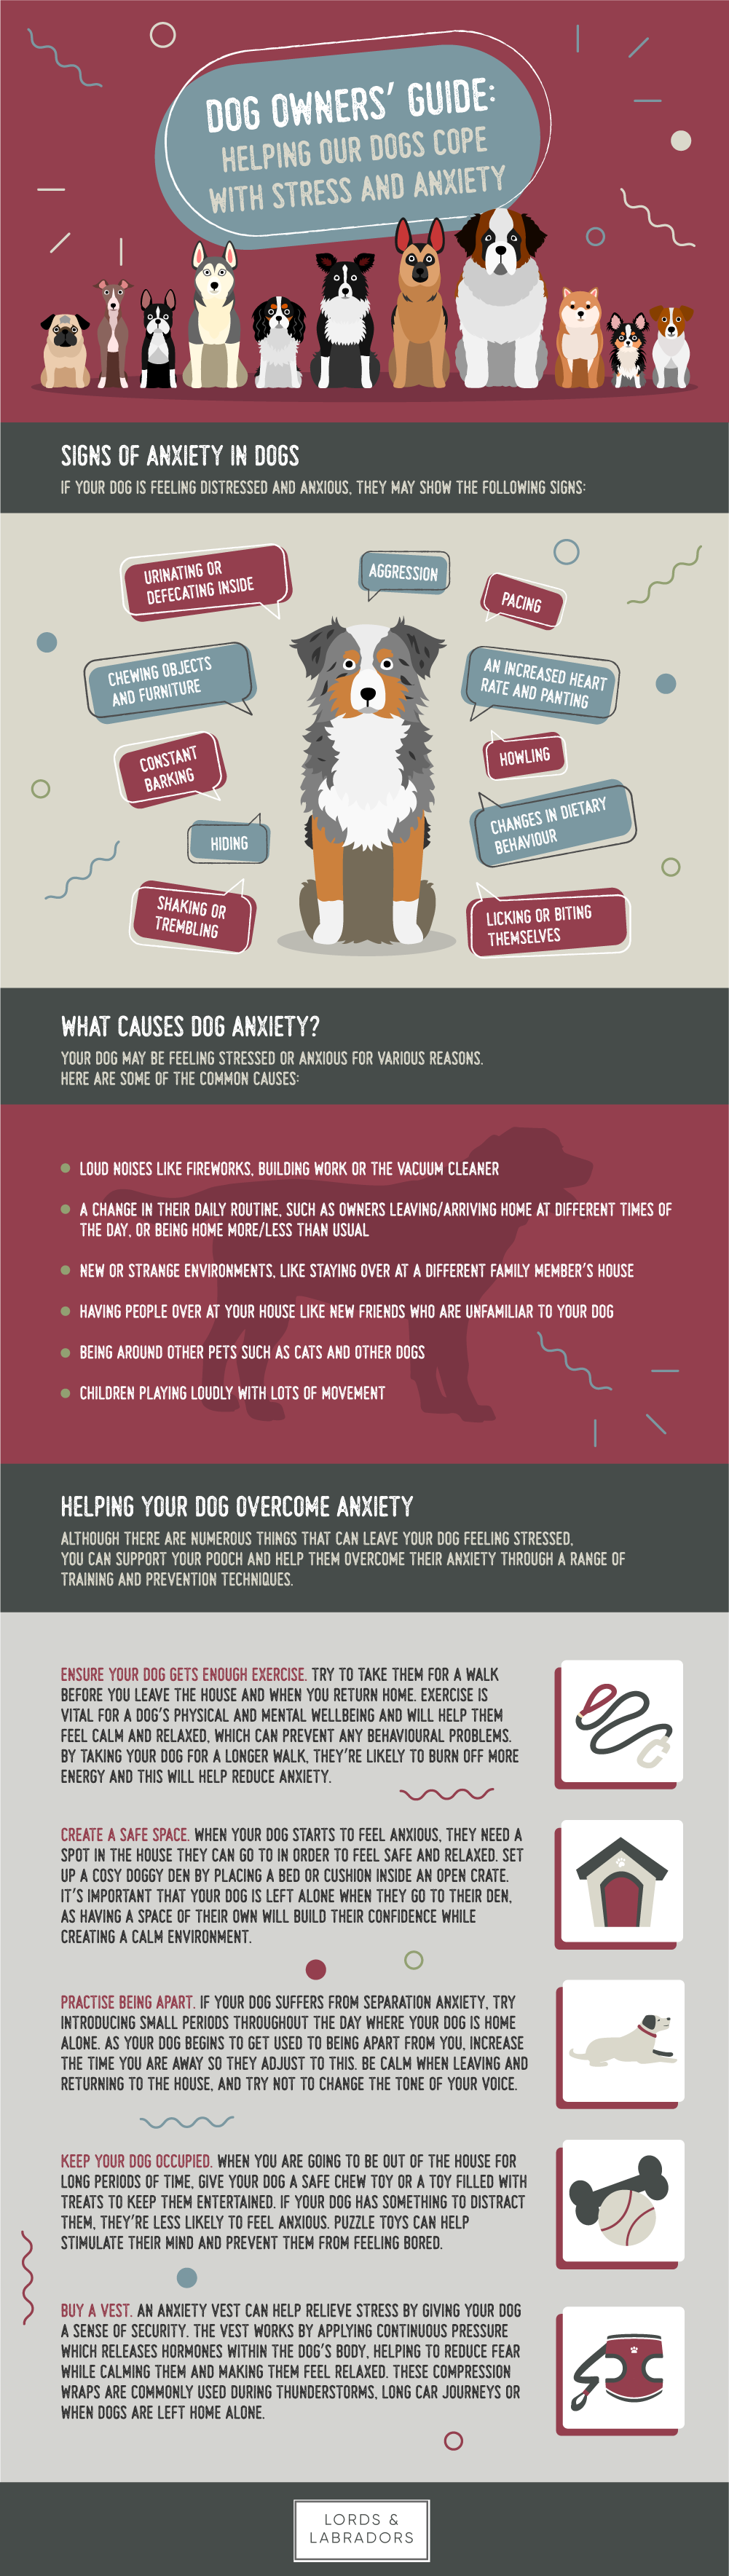 God Owners Guide to Helping Dogs with stress and anxiety